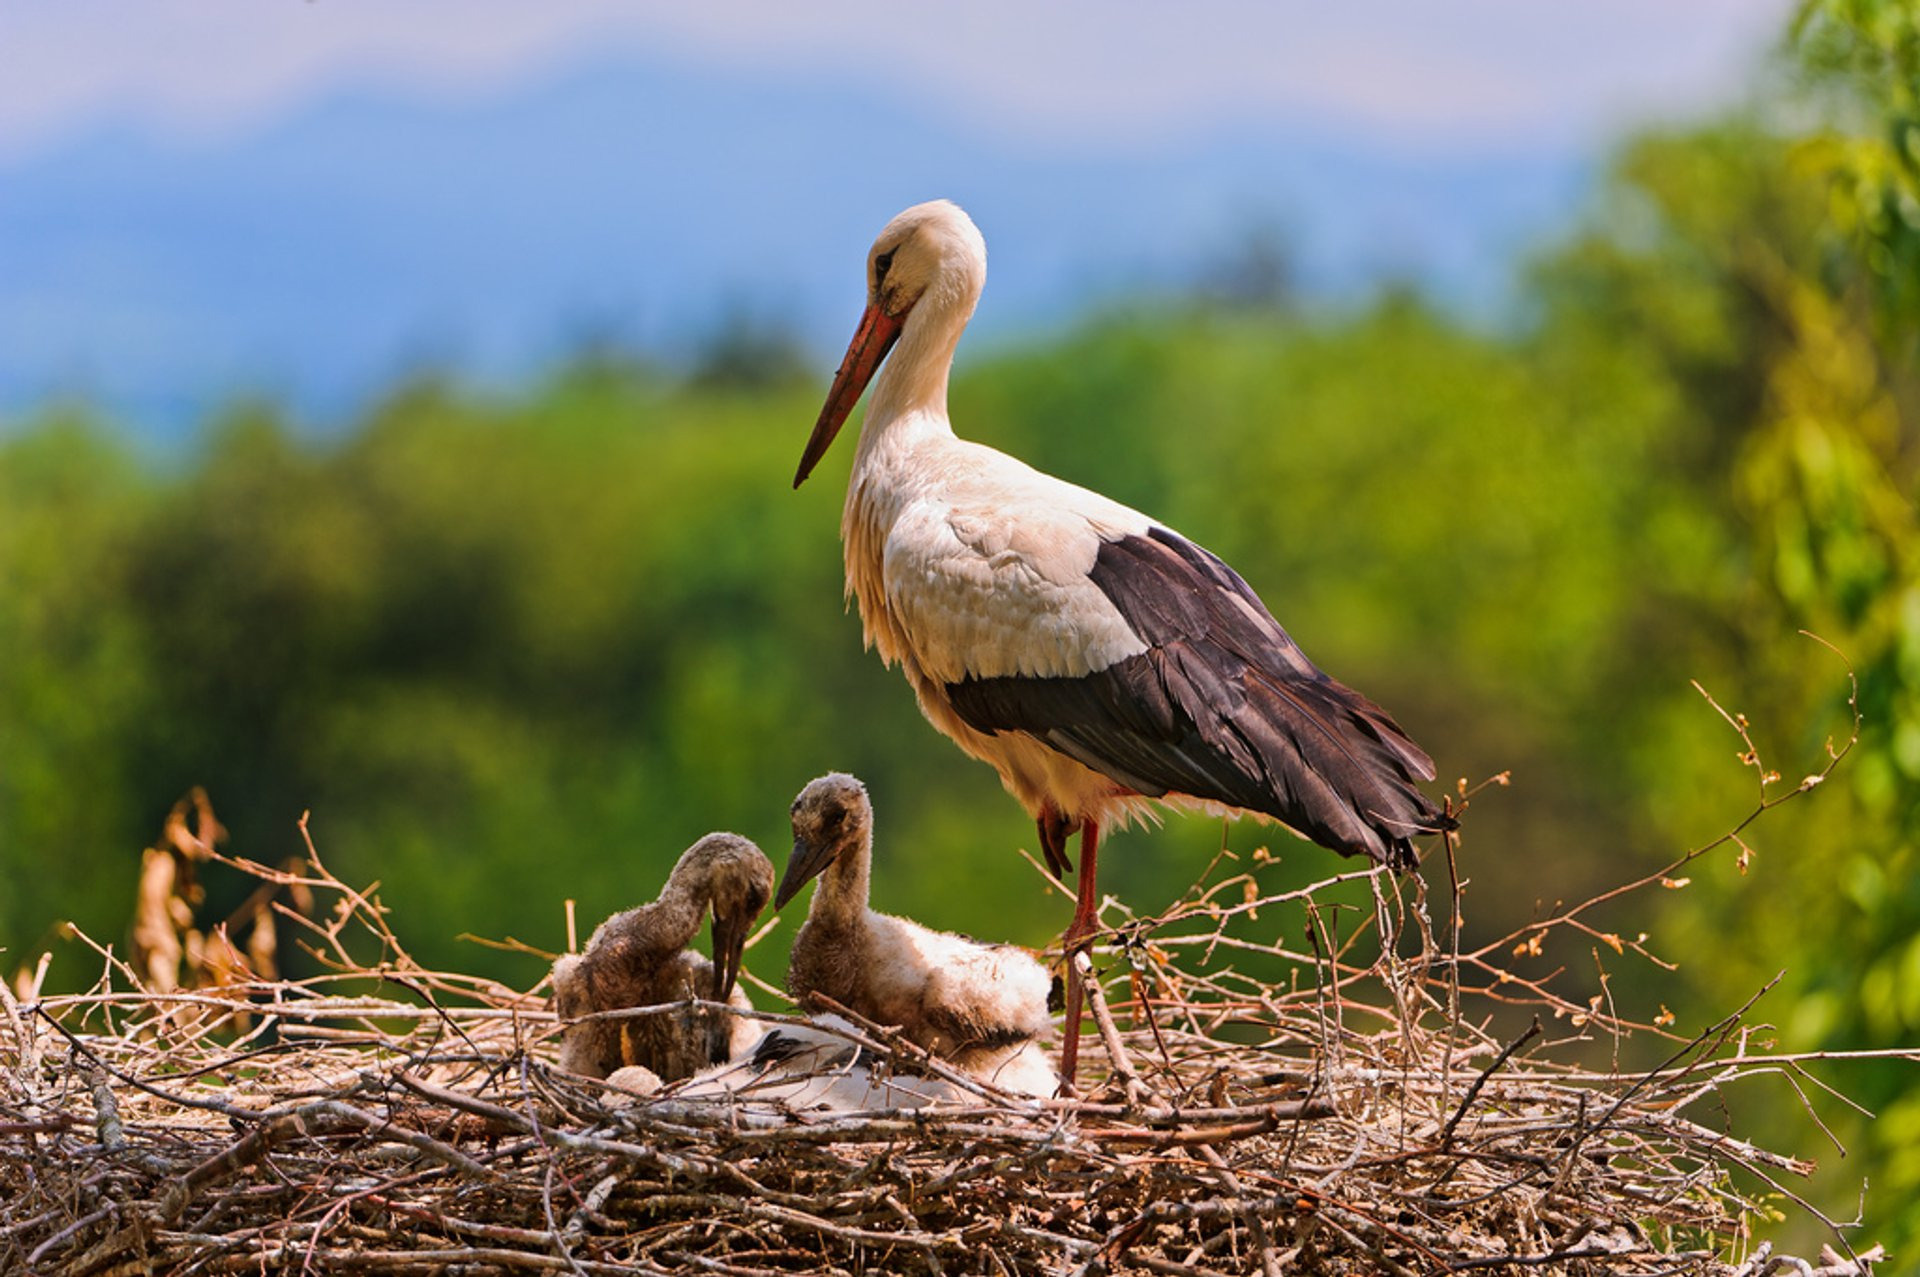 Stork with its chicks, Zoo Zürich, Switzerland 2020